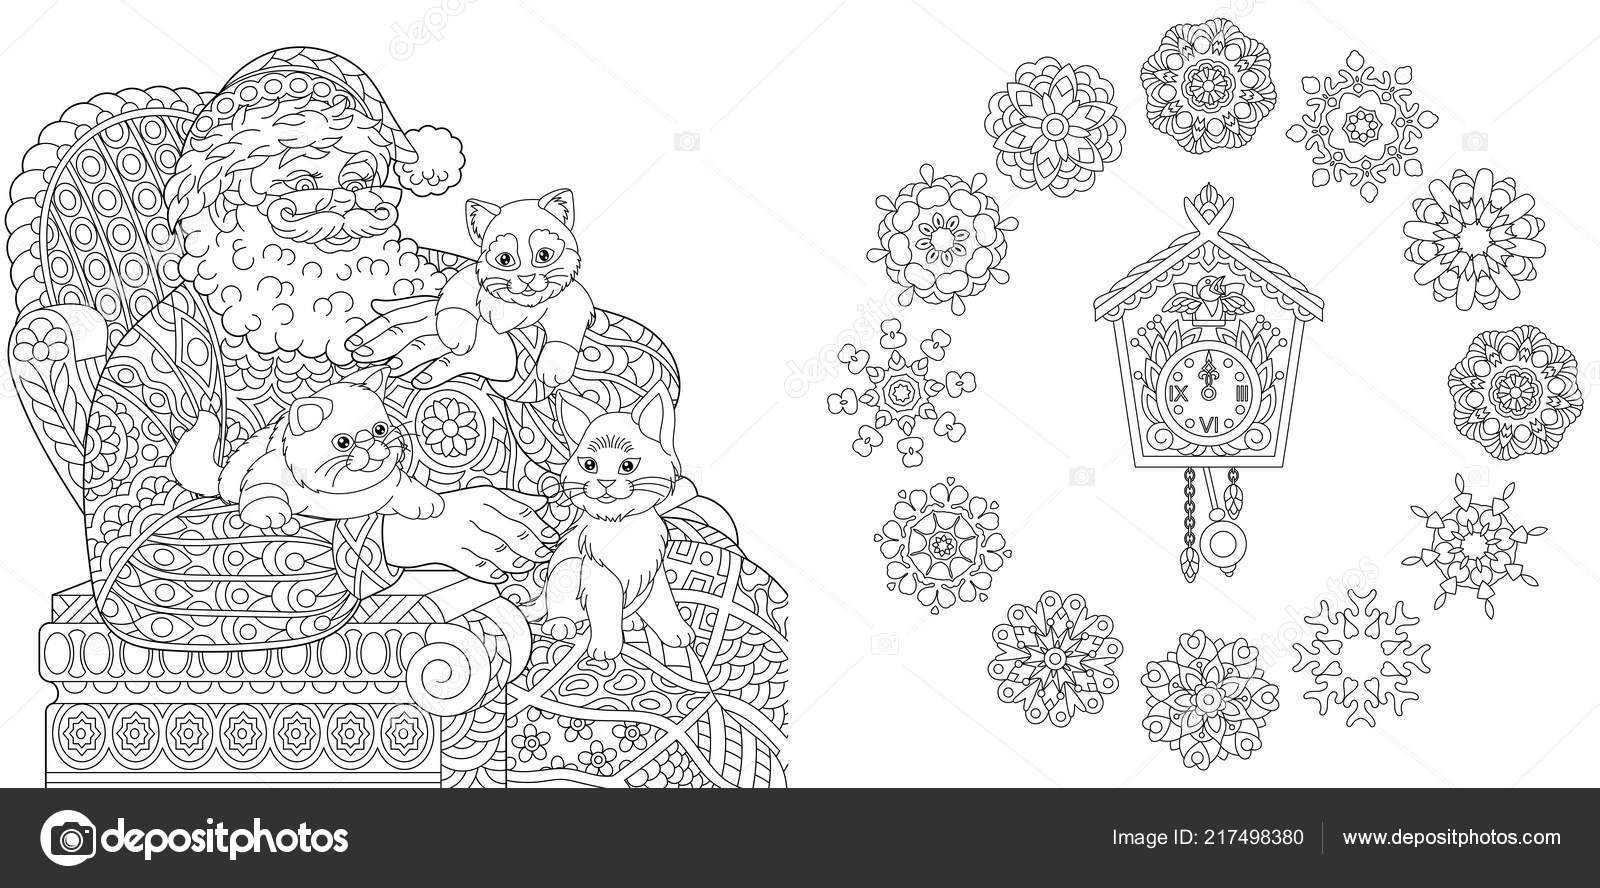 Christmas New Year Coloring Pages Coloring Book Adults Santa Claus